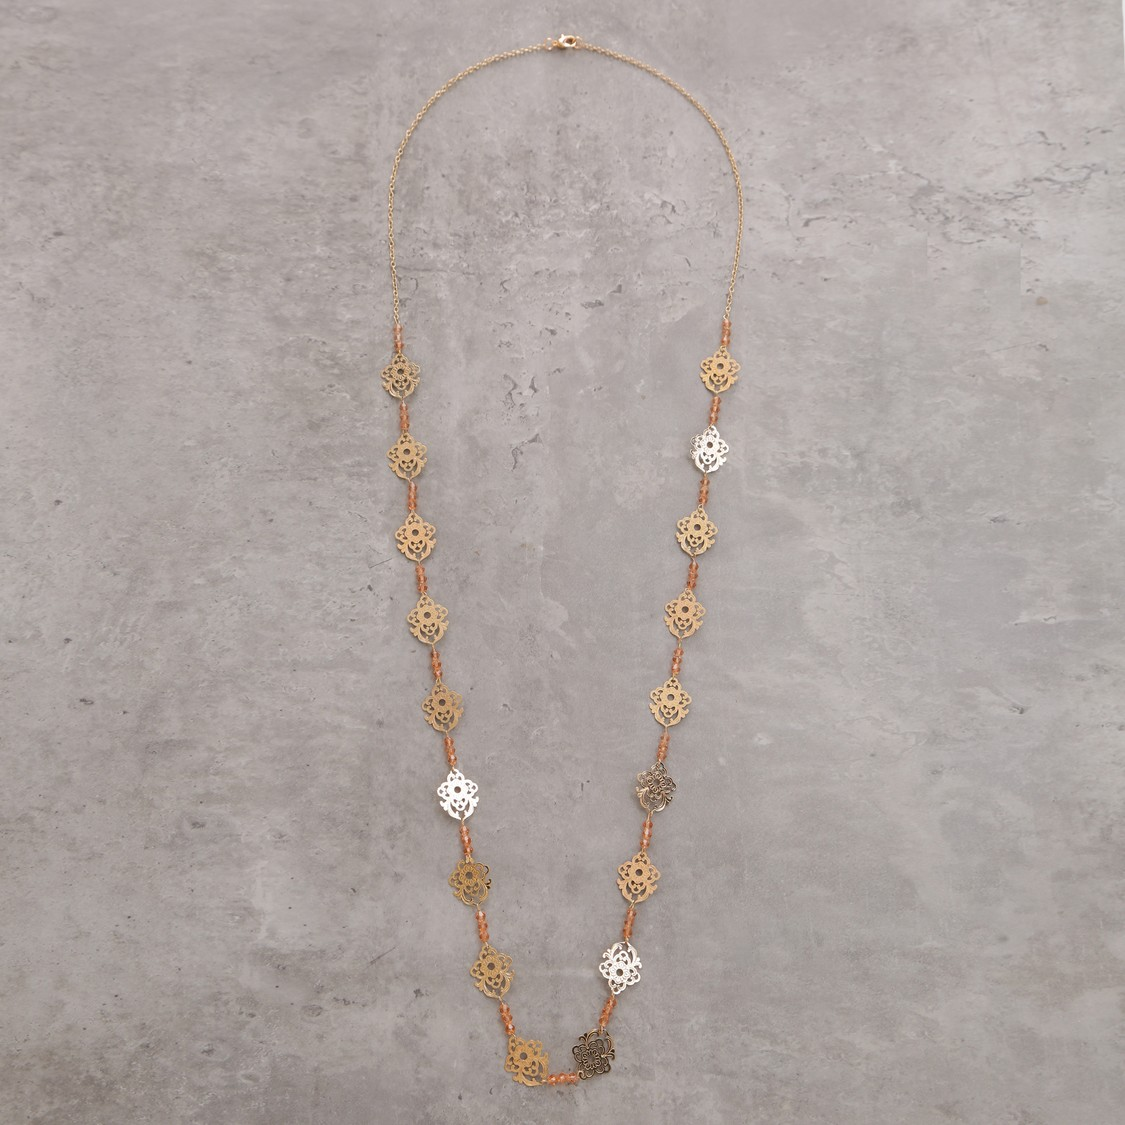 Metallic Long Necklace with Lobster Clasp